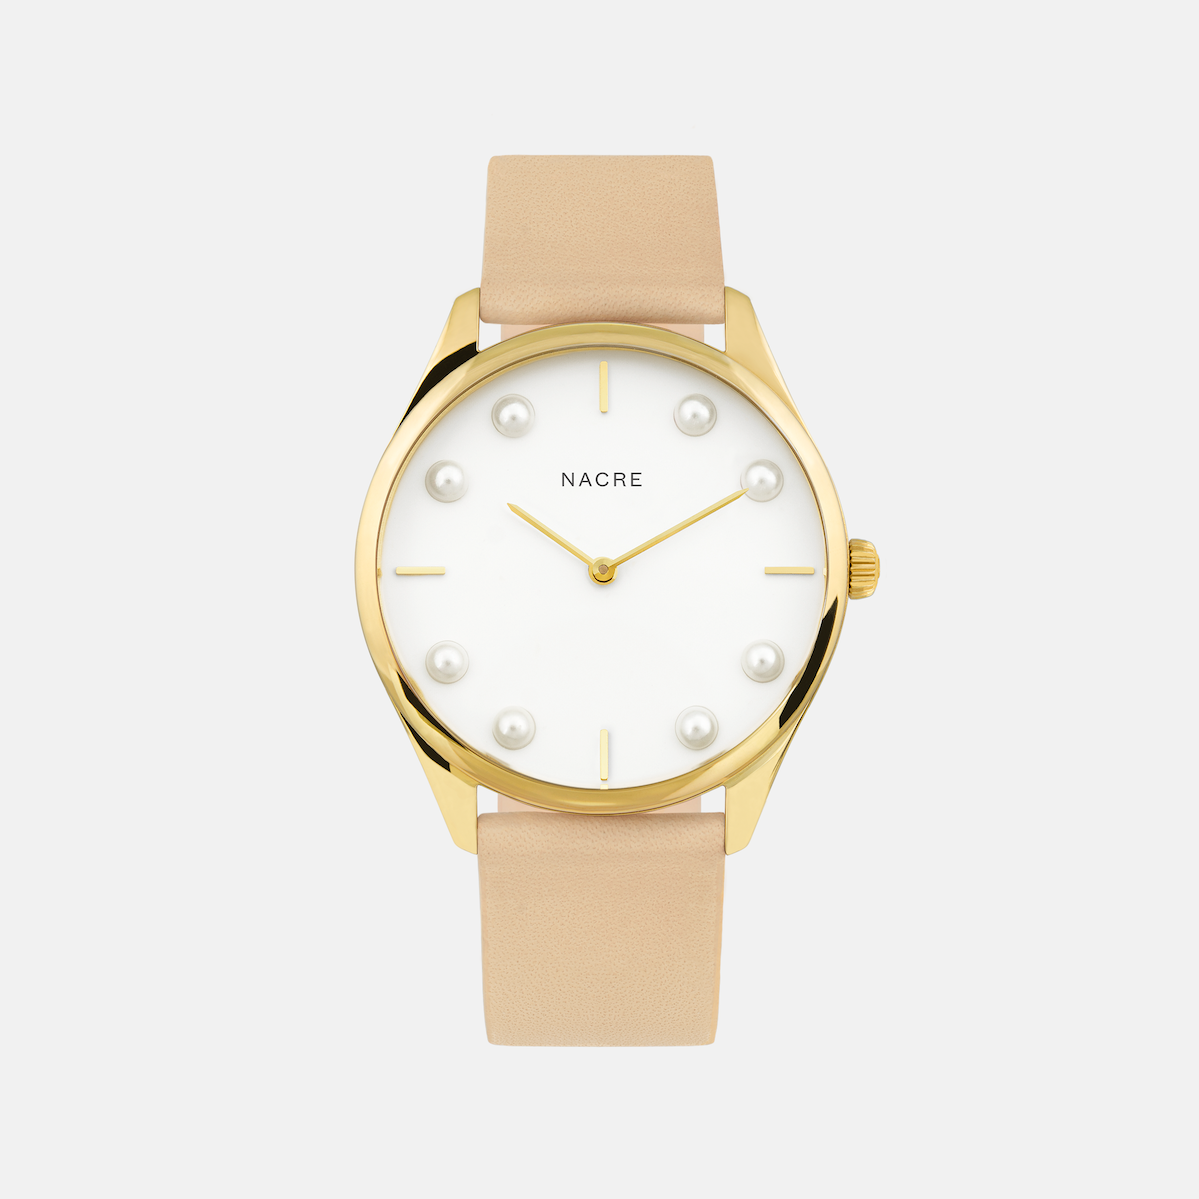 Lune 8 - Gold and White - Saddle Leather